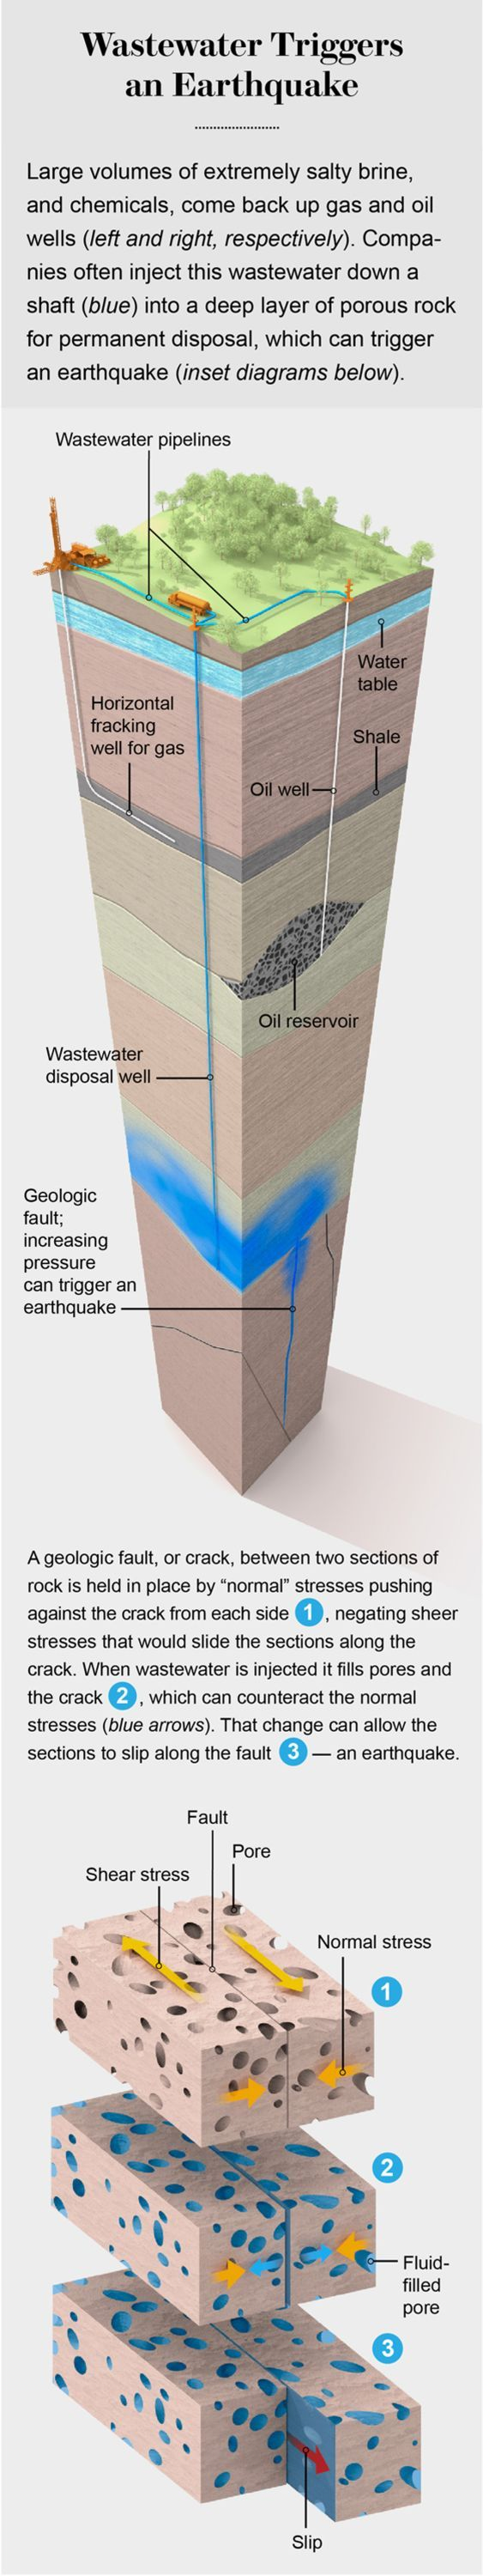 Scientists are increasingly confident about the link between earthquakes and oil…